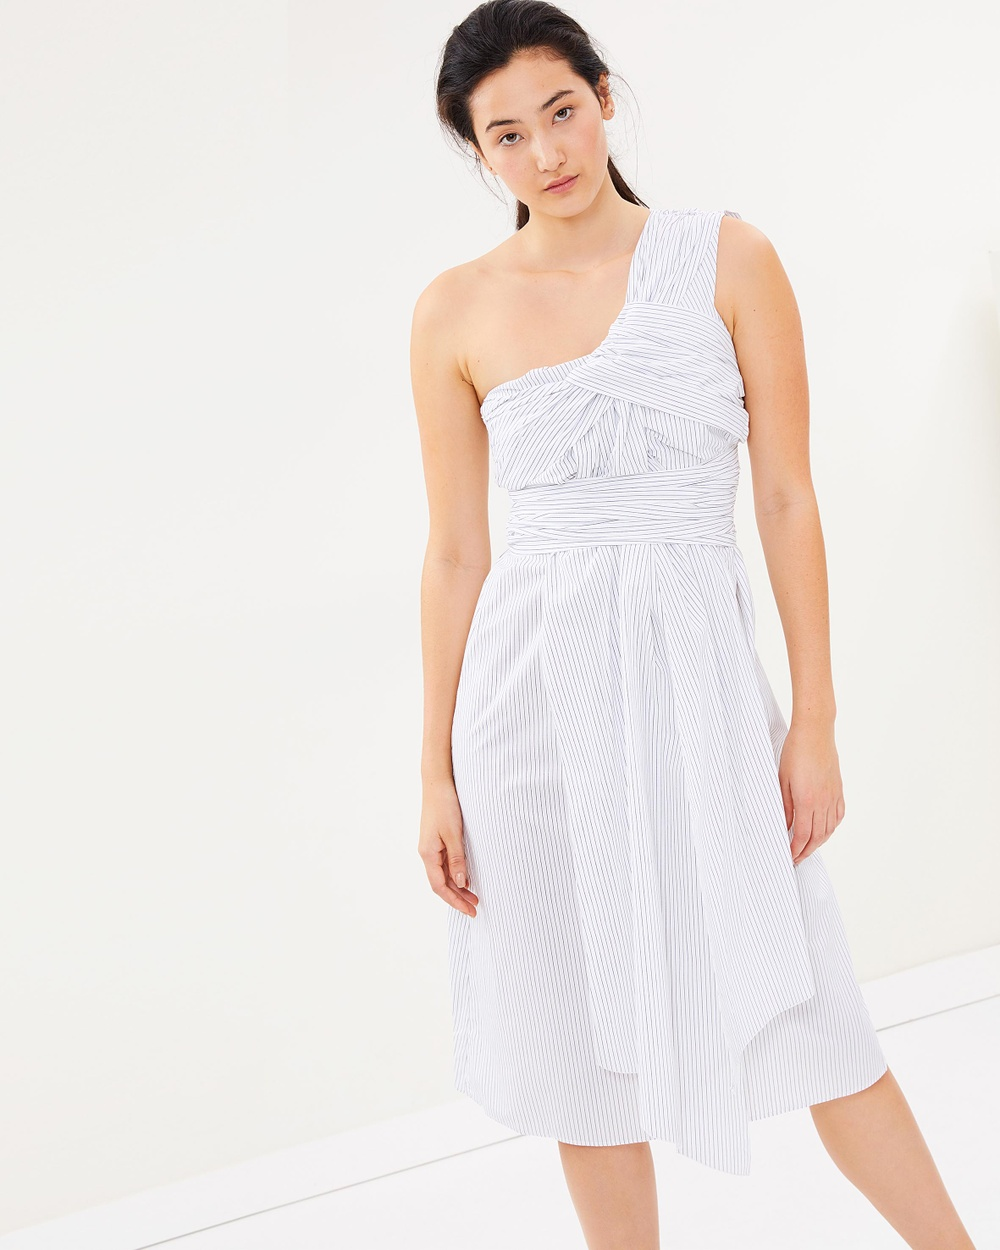 House of Dagmar Caprissa Dress Dresses Off White & Black Stripe Caprissa Dress